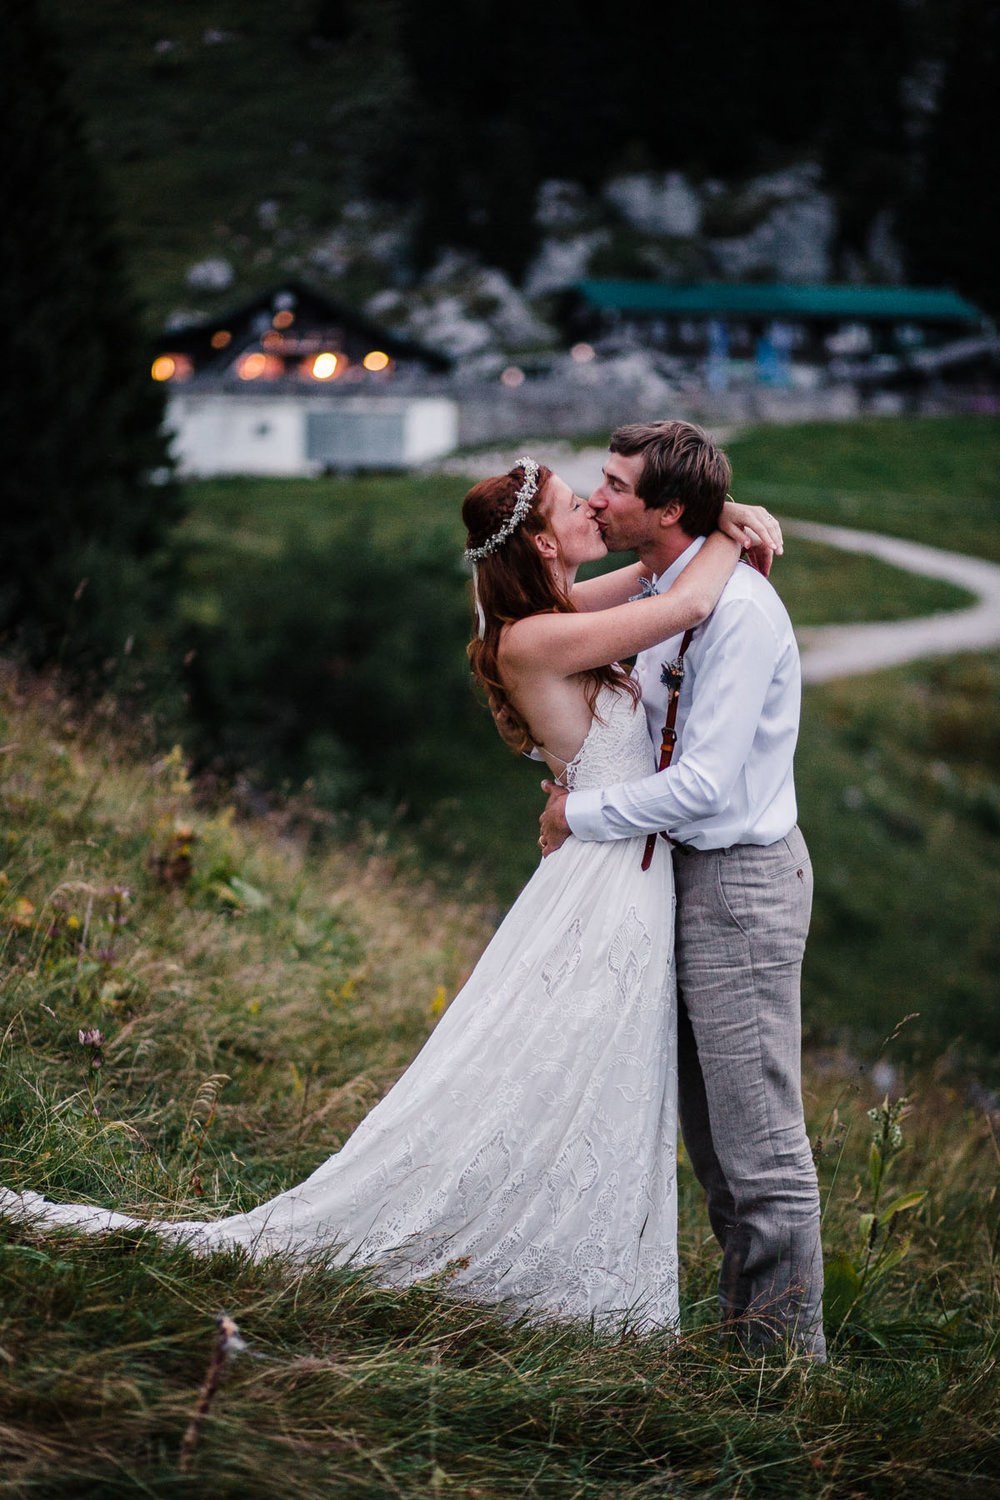 bavaria-wedding-bavarian-alps-boho-mountain-wedding-germany-bavaria-wedding-photographer (135).jpg